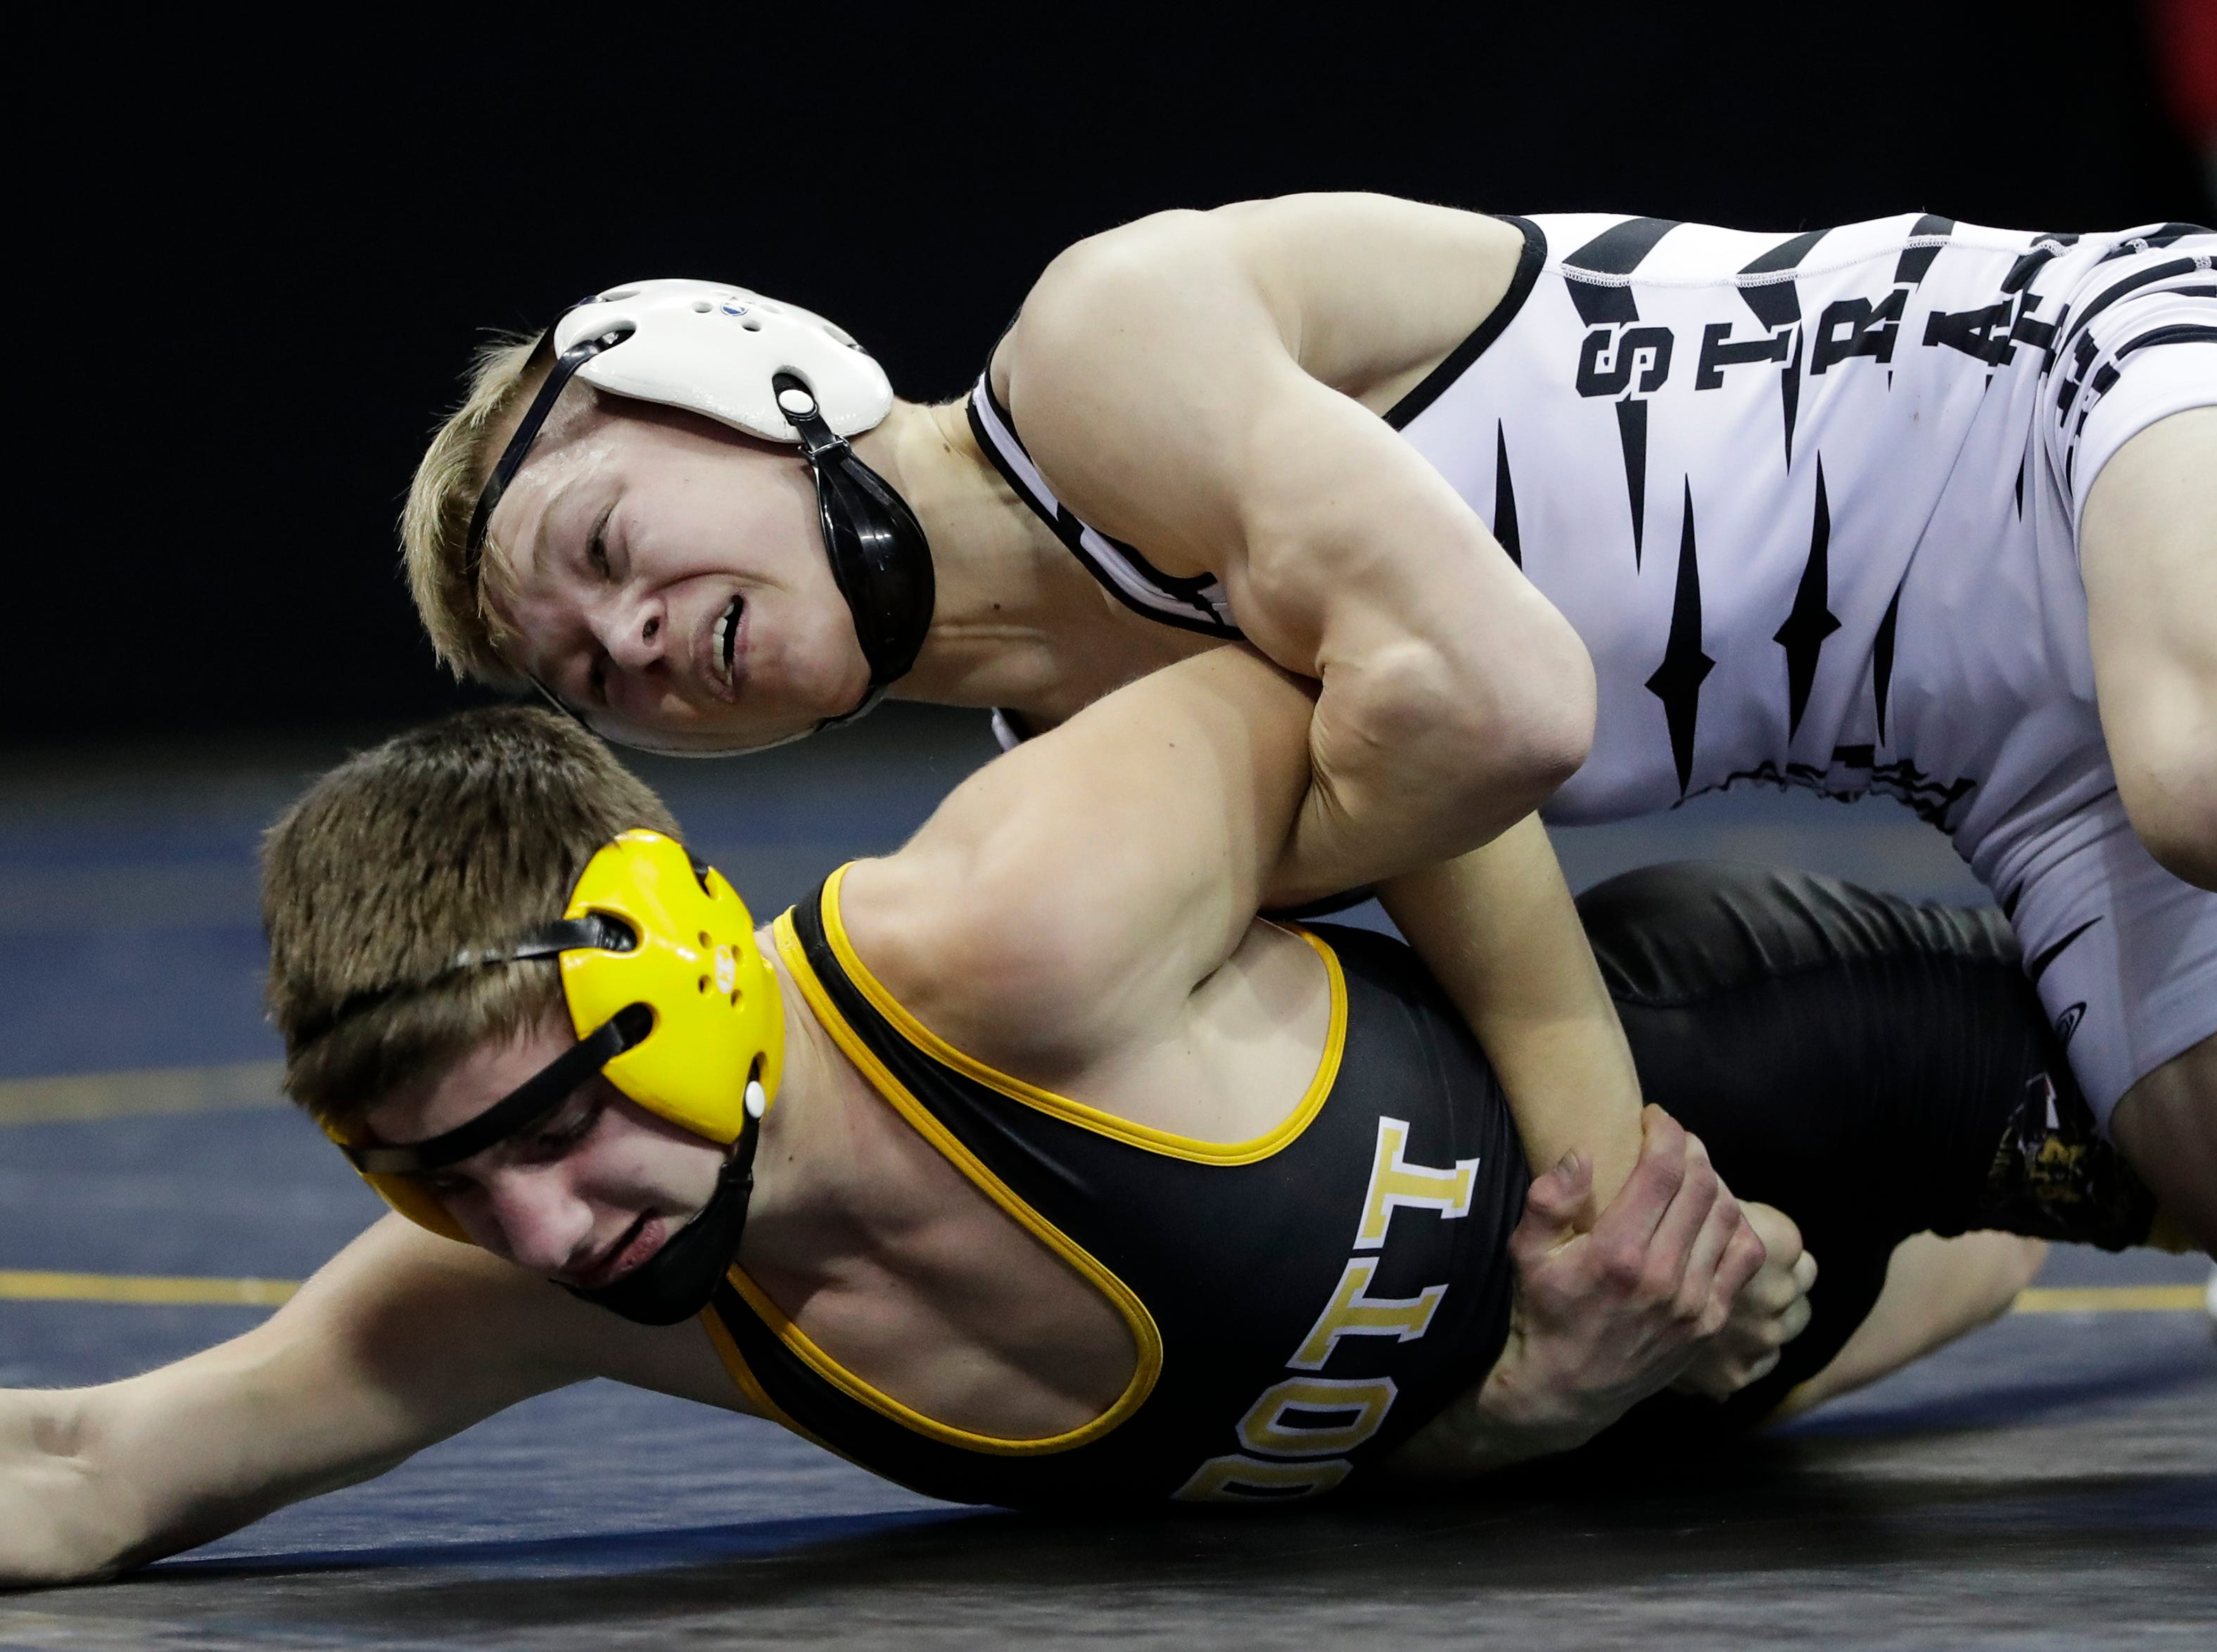 Stratford's Manny Drexler wrestles Cadott's Kaleb Sonnentag in a Division 3 120-pound weight class preliminary match during the WIAA state individual wrestling tournament at the Kohl Center Thursday, February 21, 2019, in Madison, Wis.